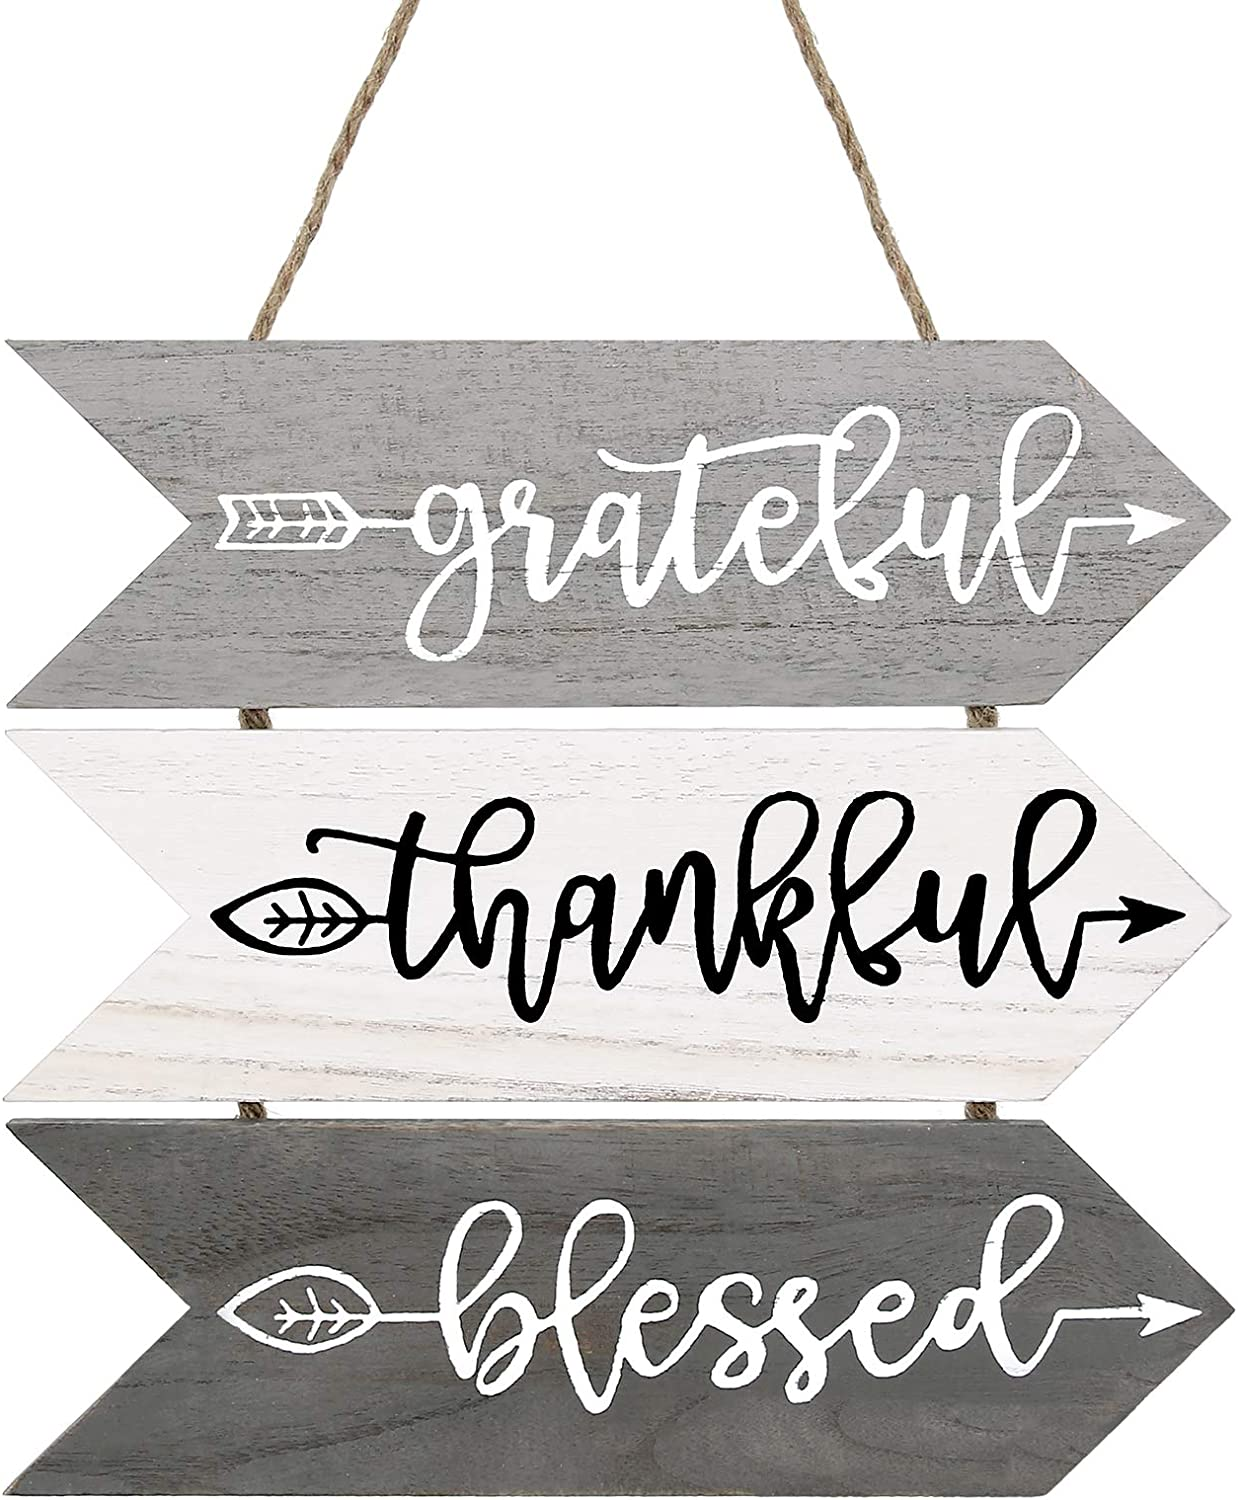 3 Pieces Rustic Wood Arrow Sign Wall Decor Thankful Grateful Blessed Sign Hanging Wall Sign Welcome Sign for Wall Art Farm House Home Living Room Kitchen Decorations (Classic Colors)